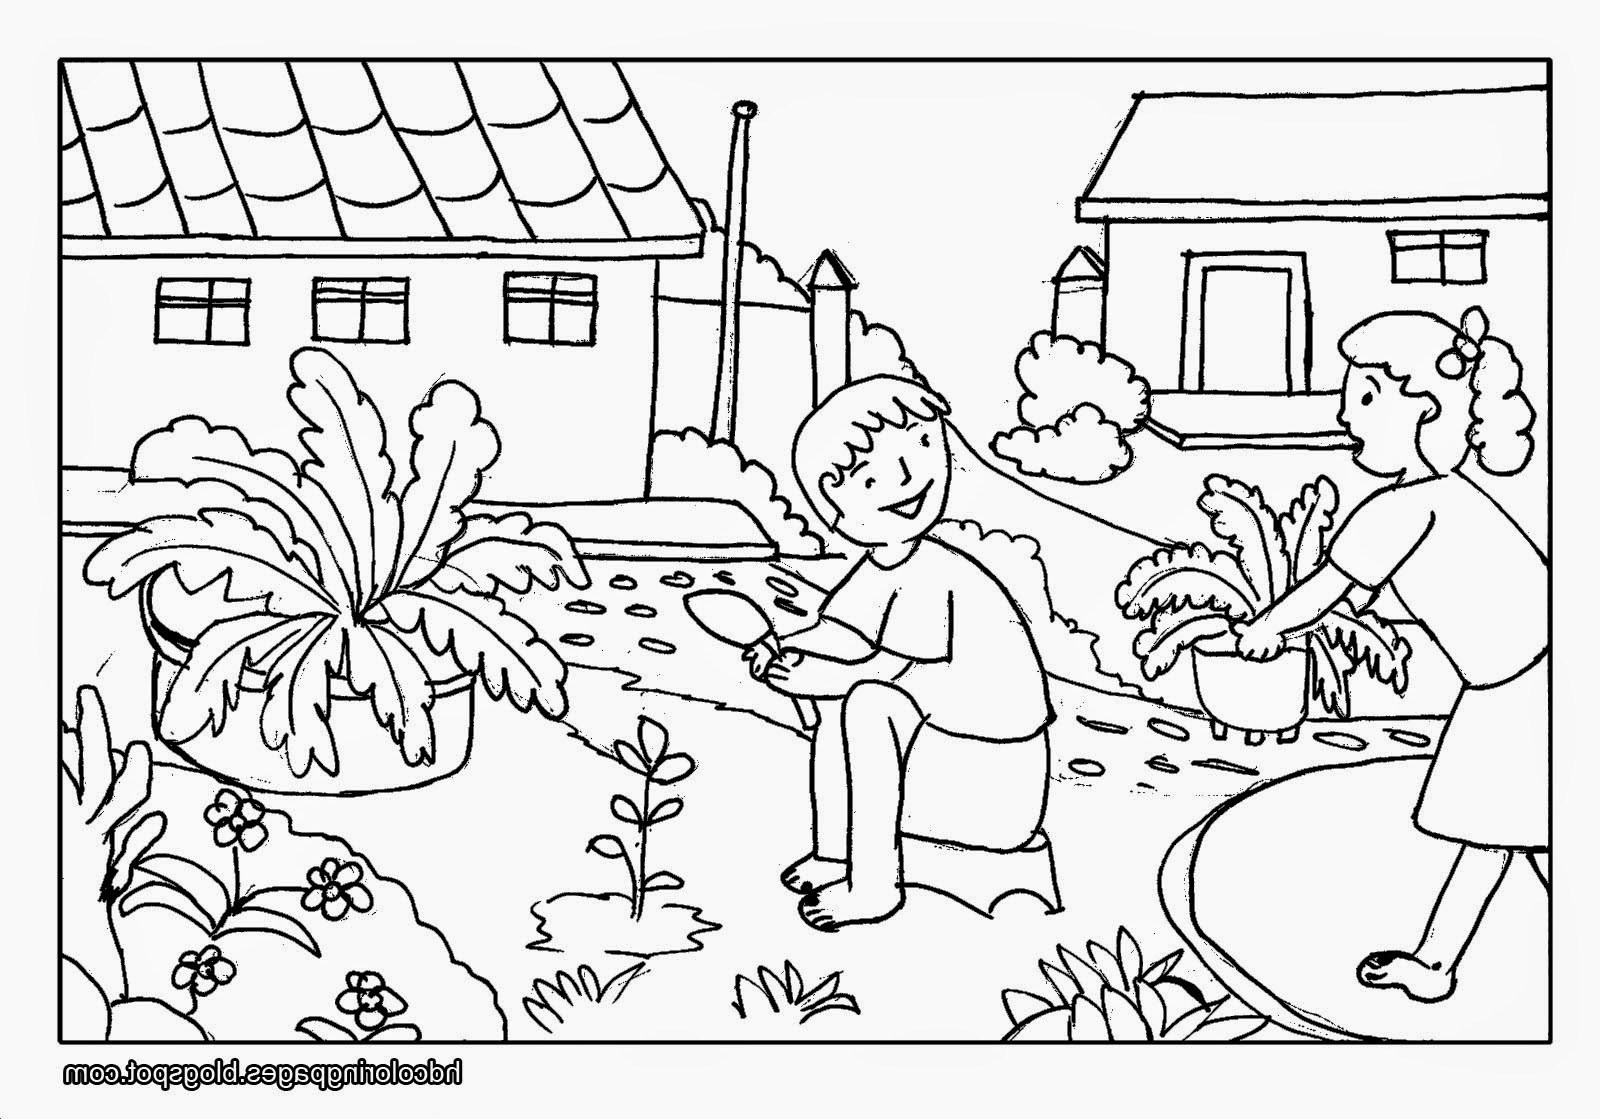 nature scene nature coloring pages nature scenes drawing at getdrawings free download nature nature scene coloring pages